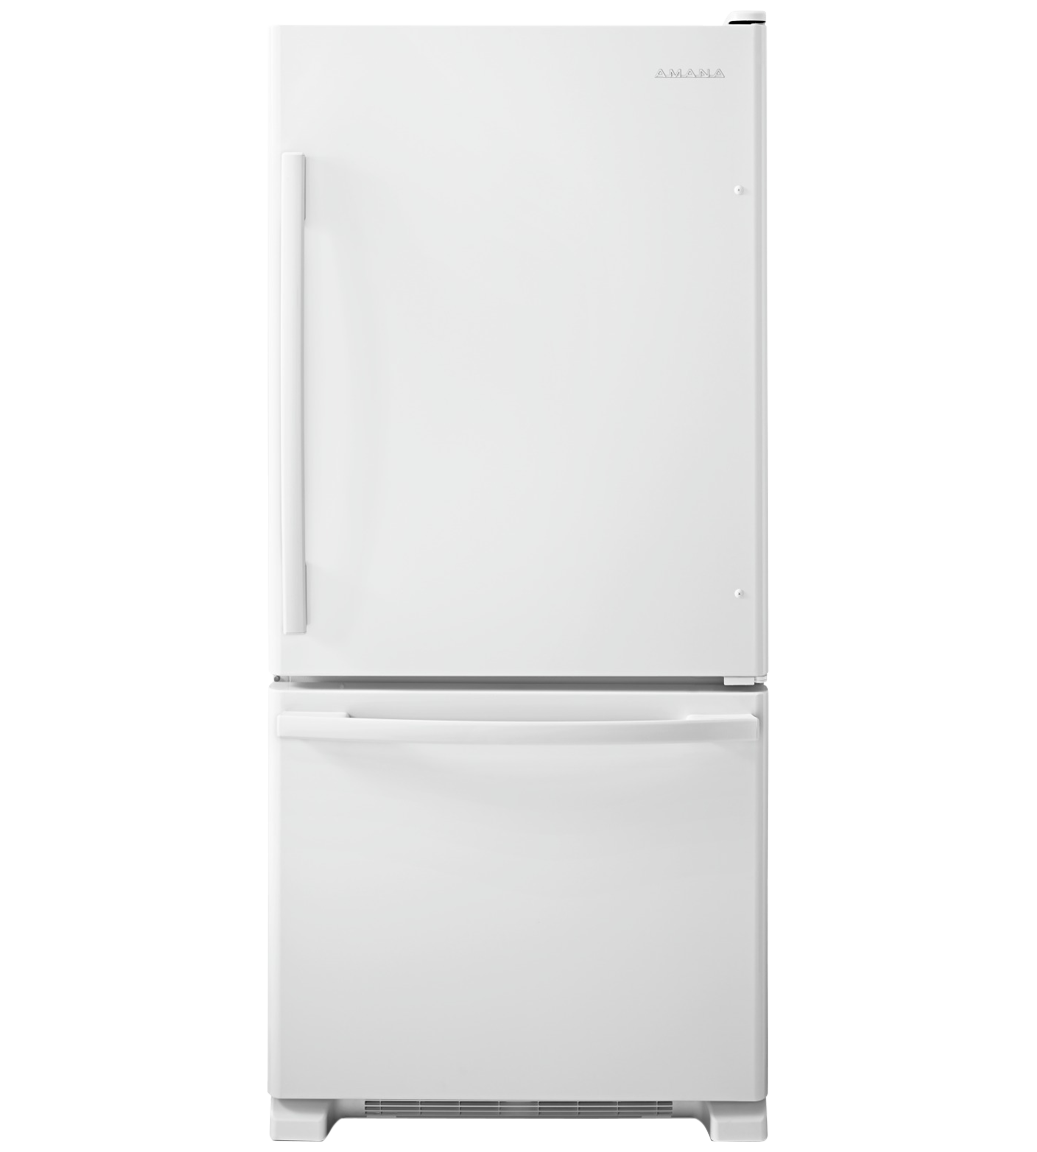 Amana Refrigerator 30 ABB1924BR in White color showcased by Corbeil Electro Store